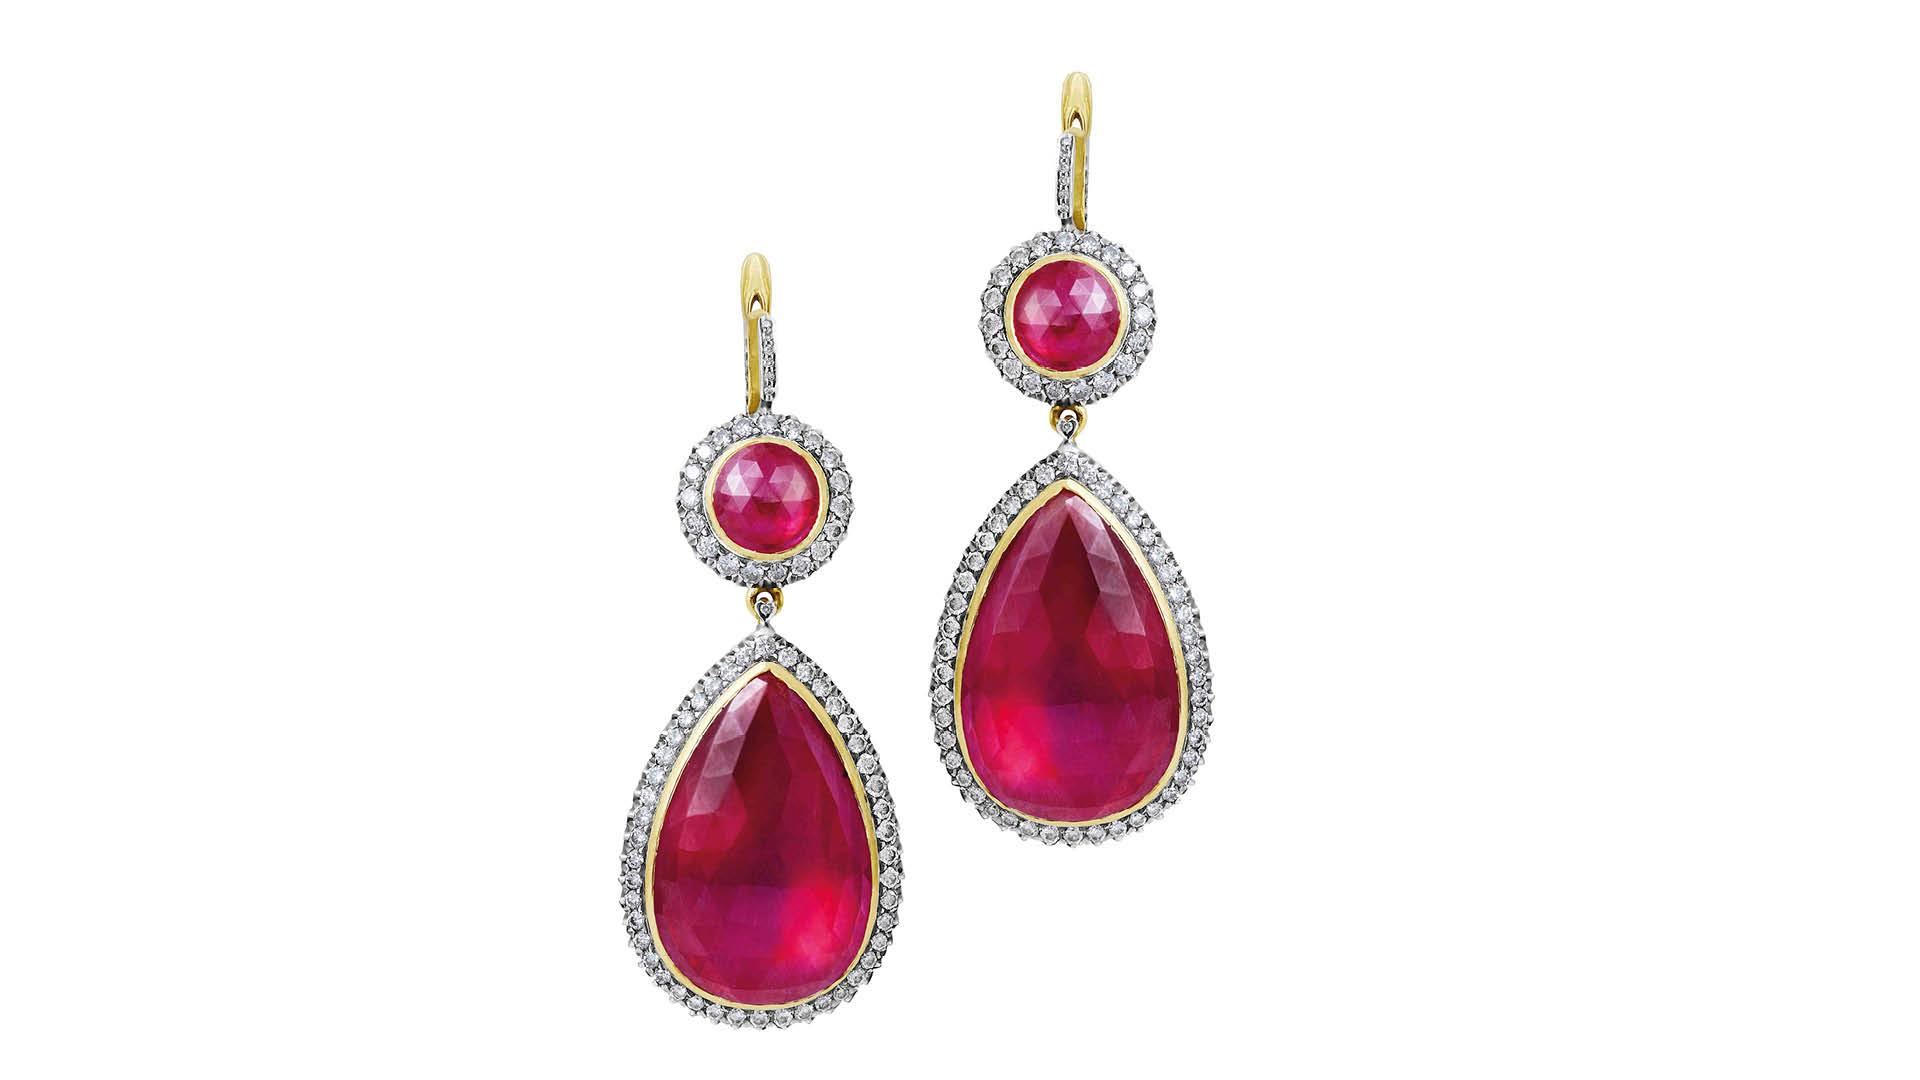 Ruby and diamond earrings by Gemfields